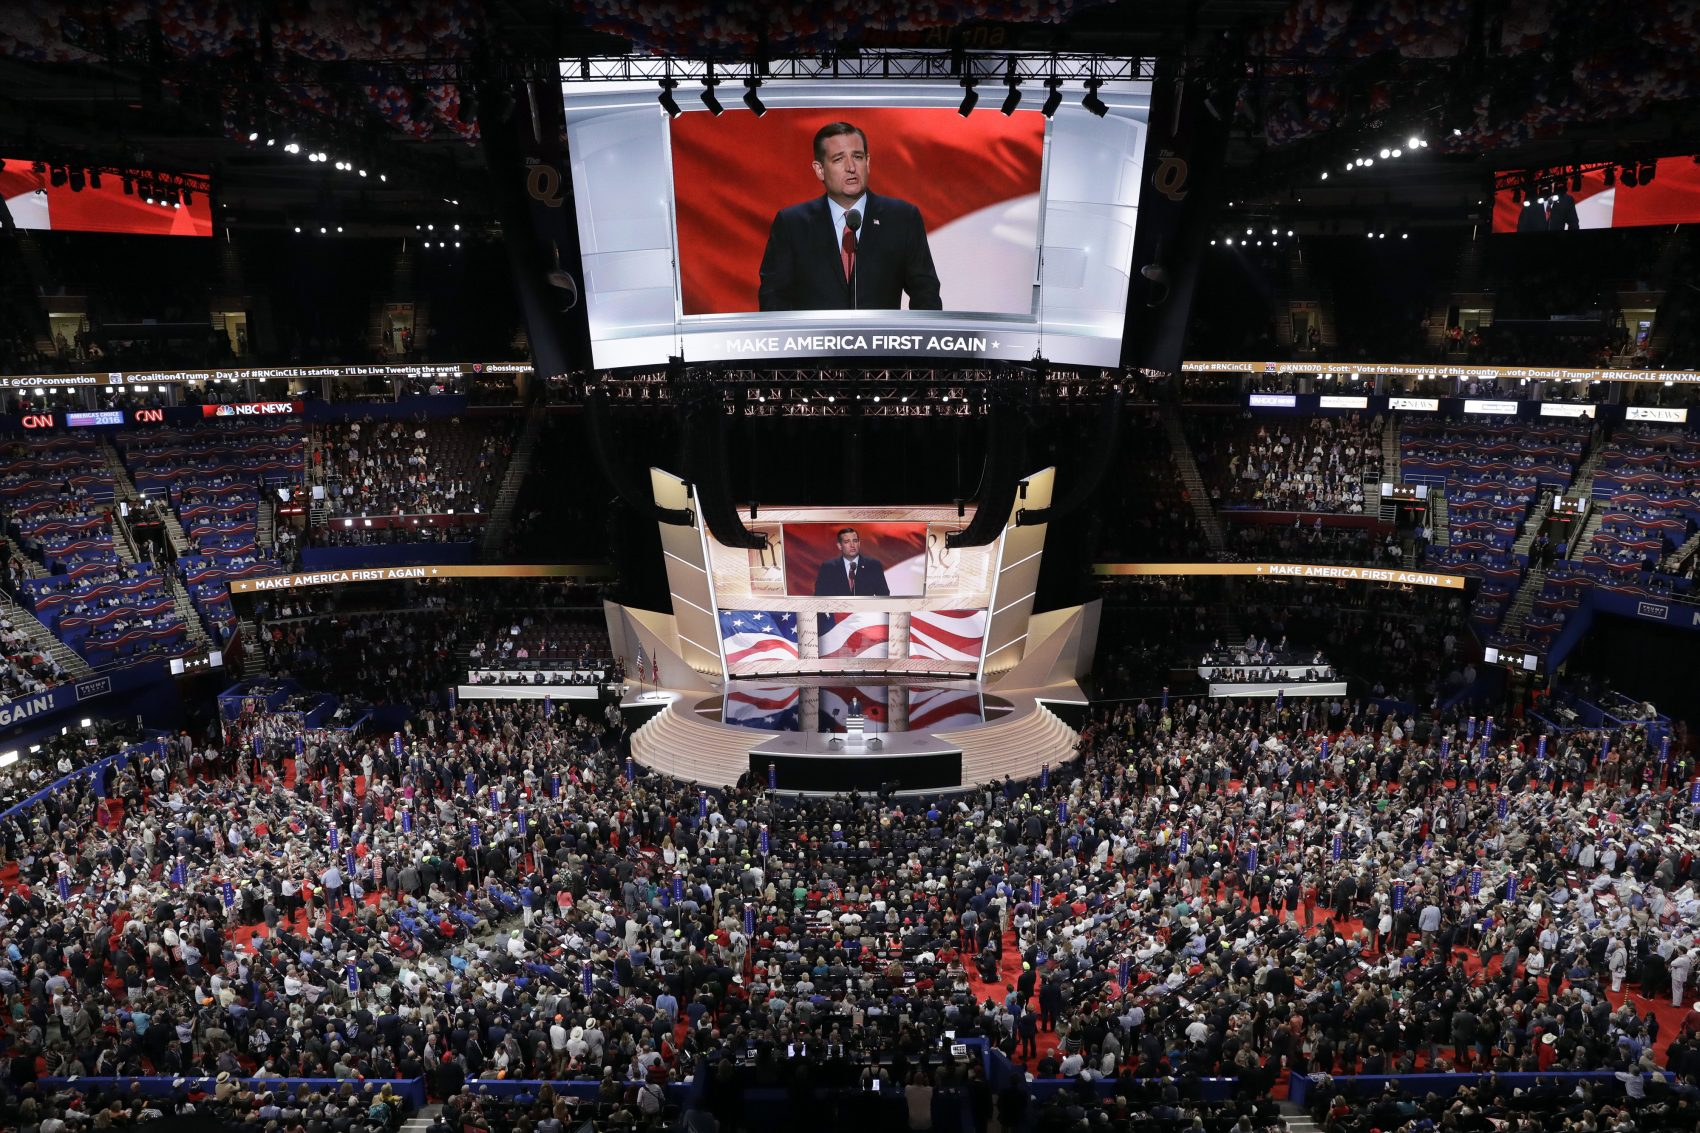 Sen. Ted Cruz, R-Tex., speaks during the third day session of the Republican National Convention in Cleveland, Wednesday, July 20, 2016. (John Locher/AP)